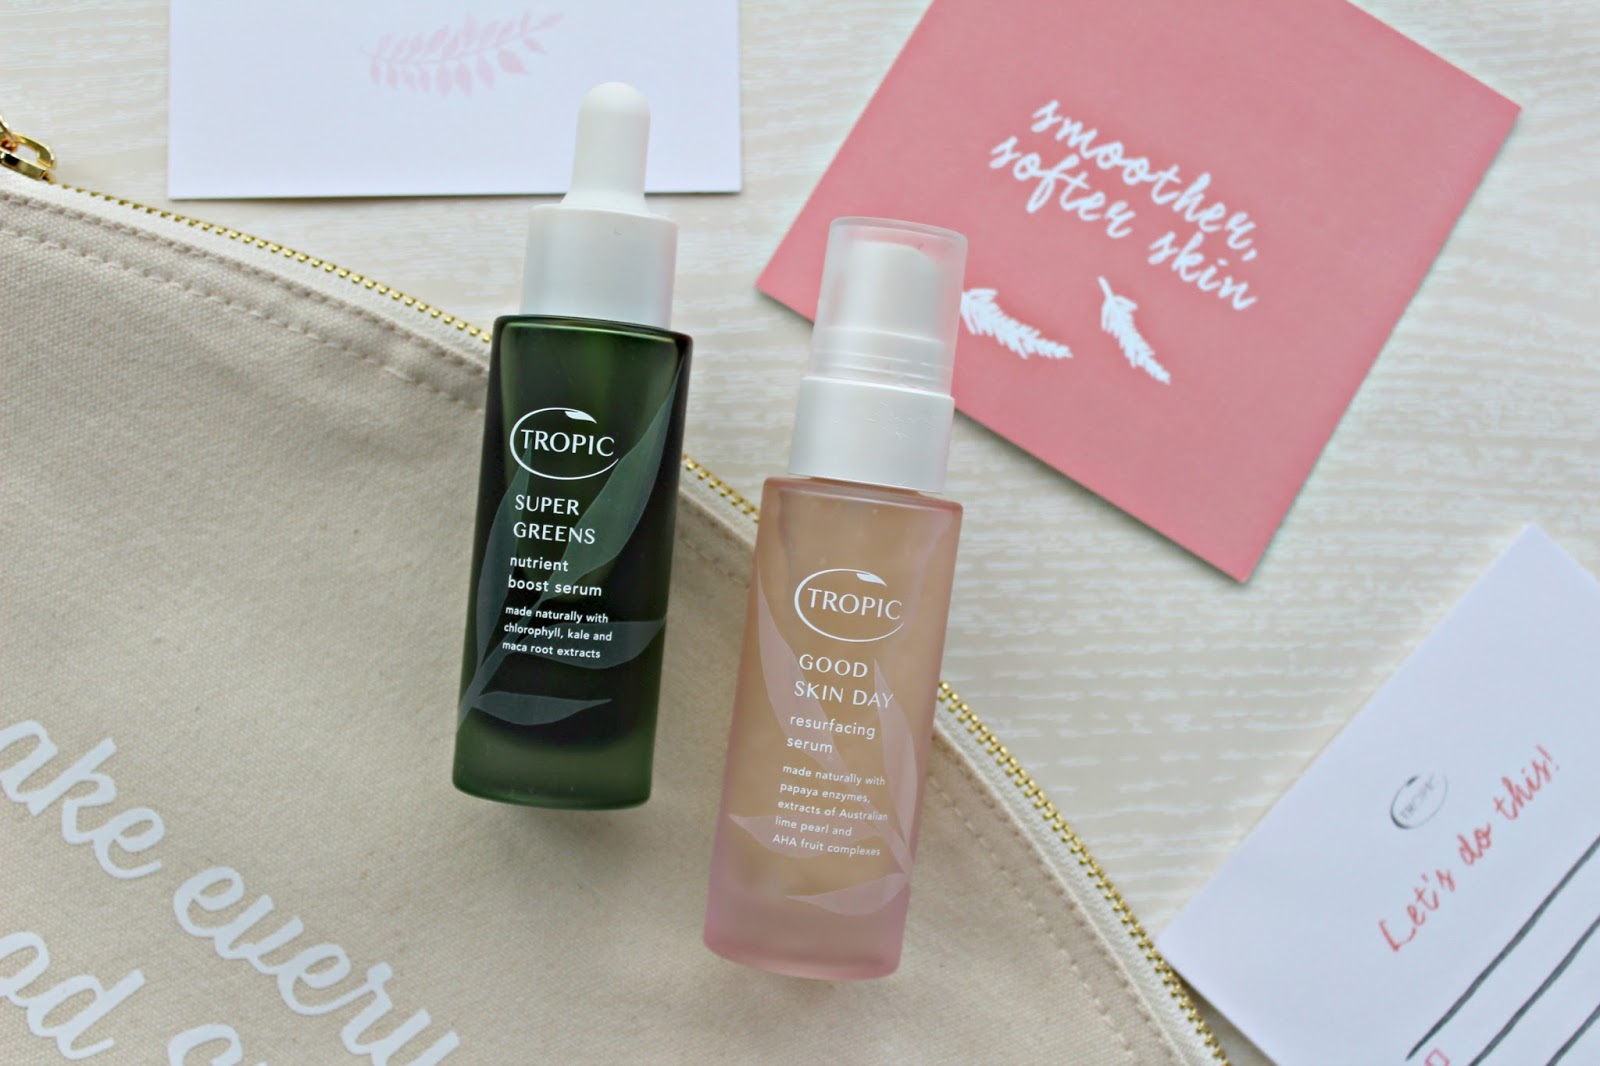 Tropic Skincare Supergreens and Good skin day serums review